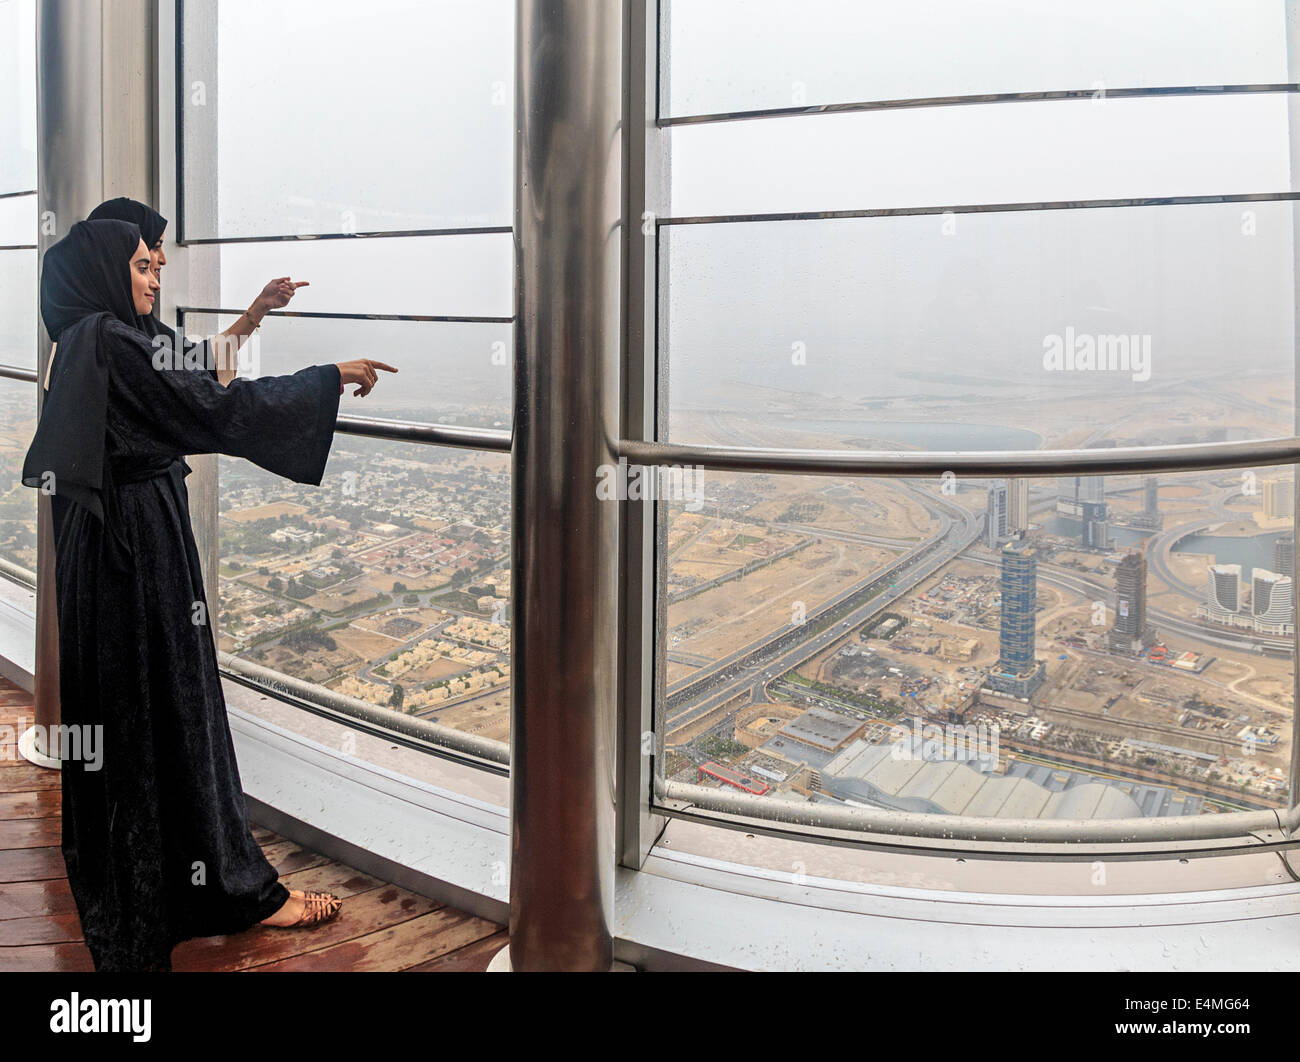 Local women wearing traditional Muslim burka robes view the city of Dubai from the top of the Burj Khalifa - Stock Image